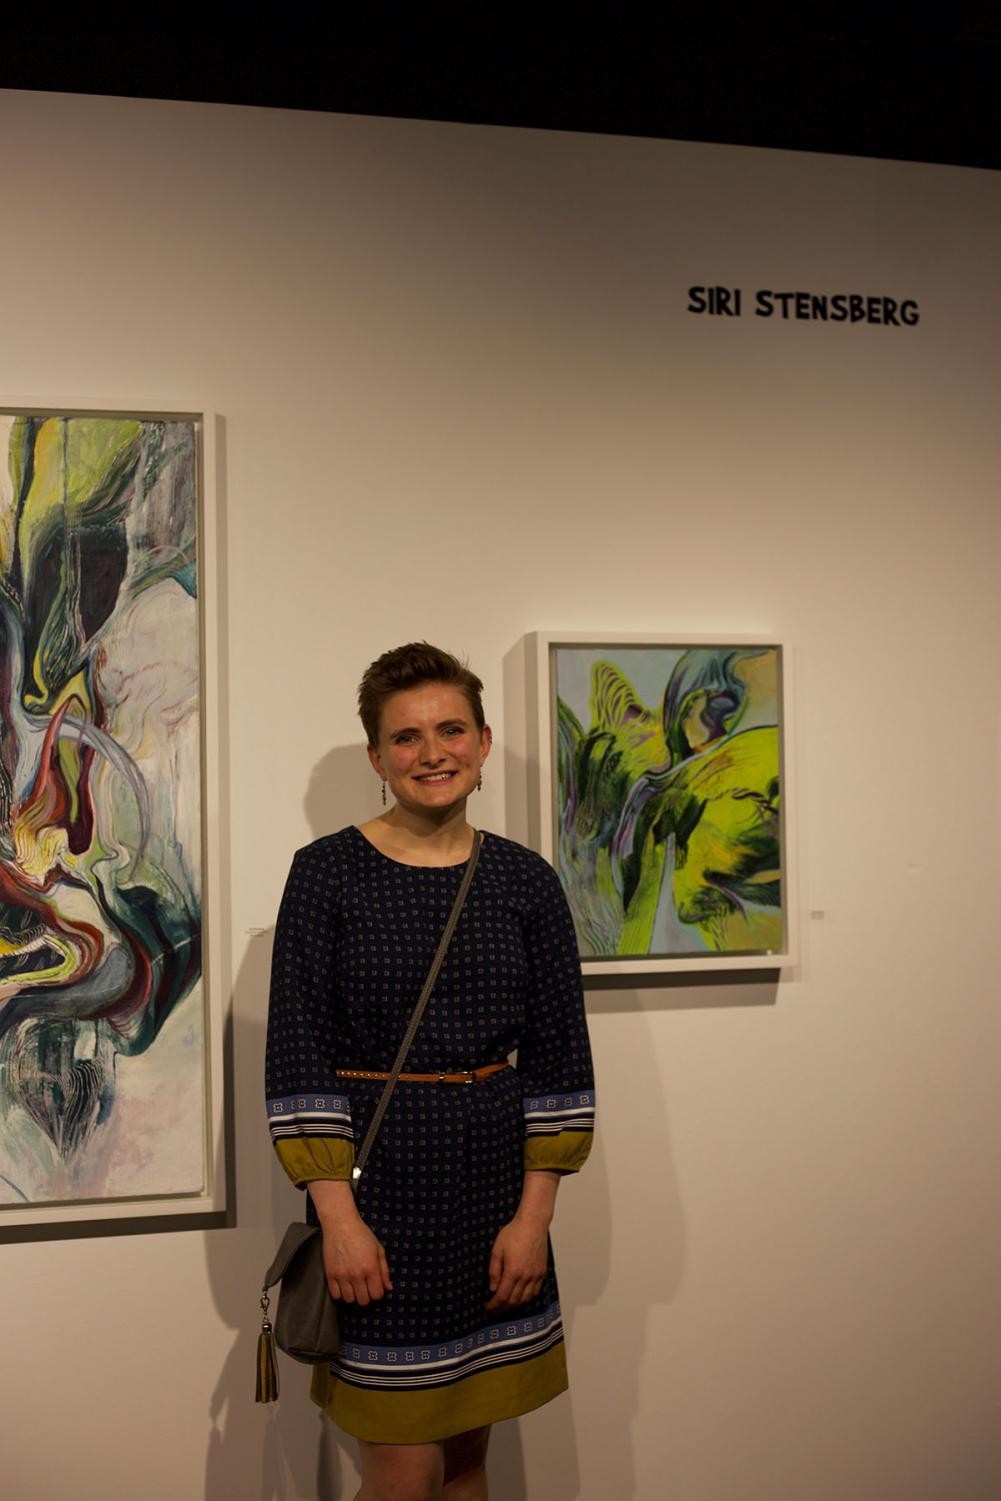 Siri+Stensberg%2C+a+fourth-year+drawing+and+painting+student%2C+stands+next+to+a+few+of+her+presentations.+